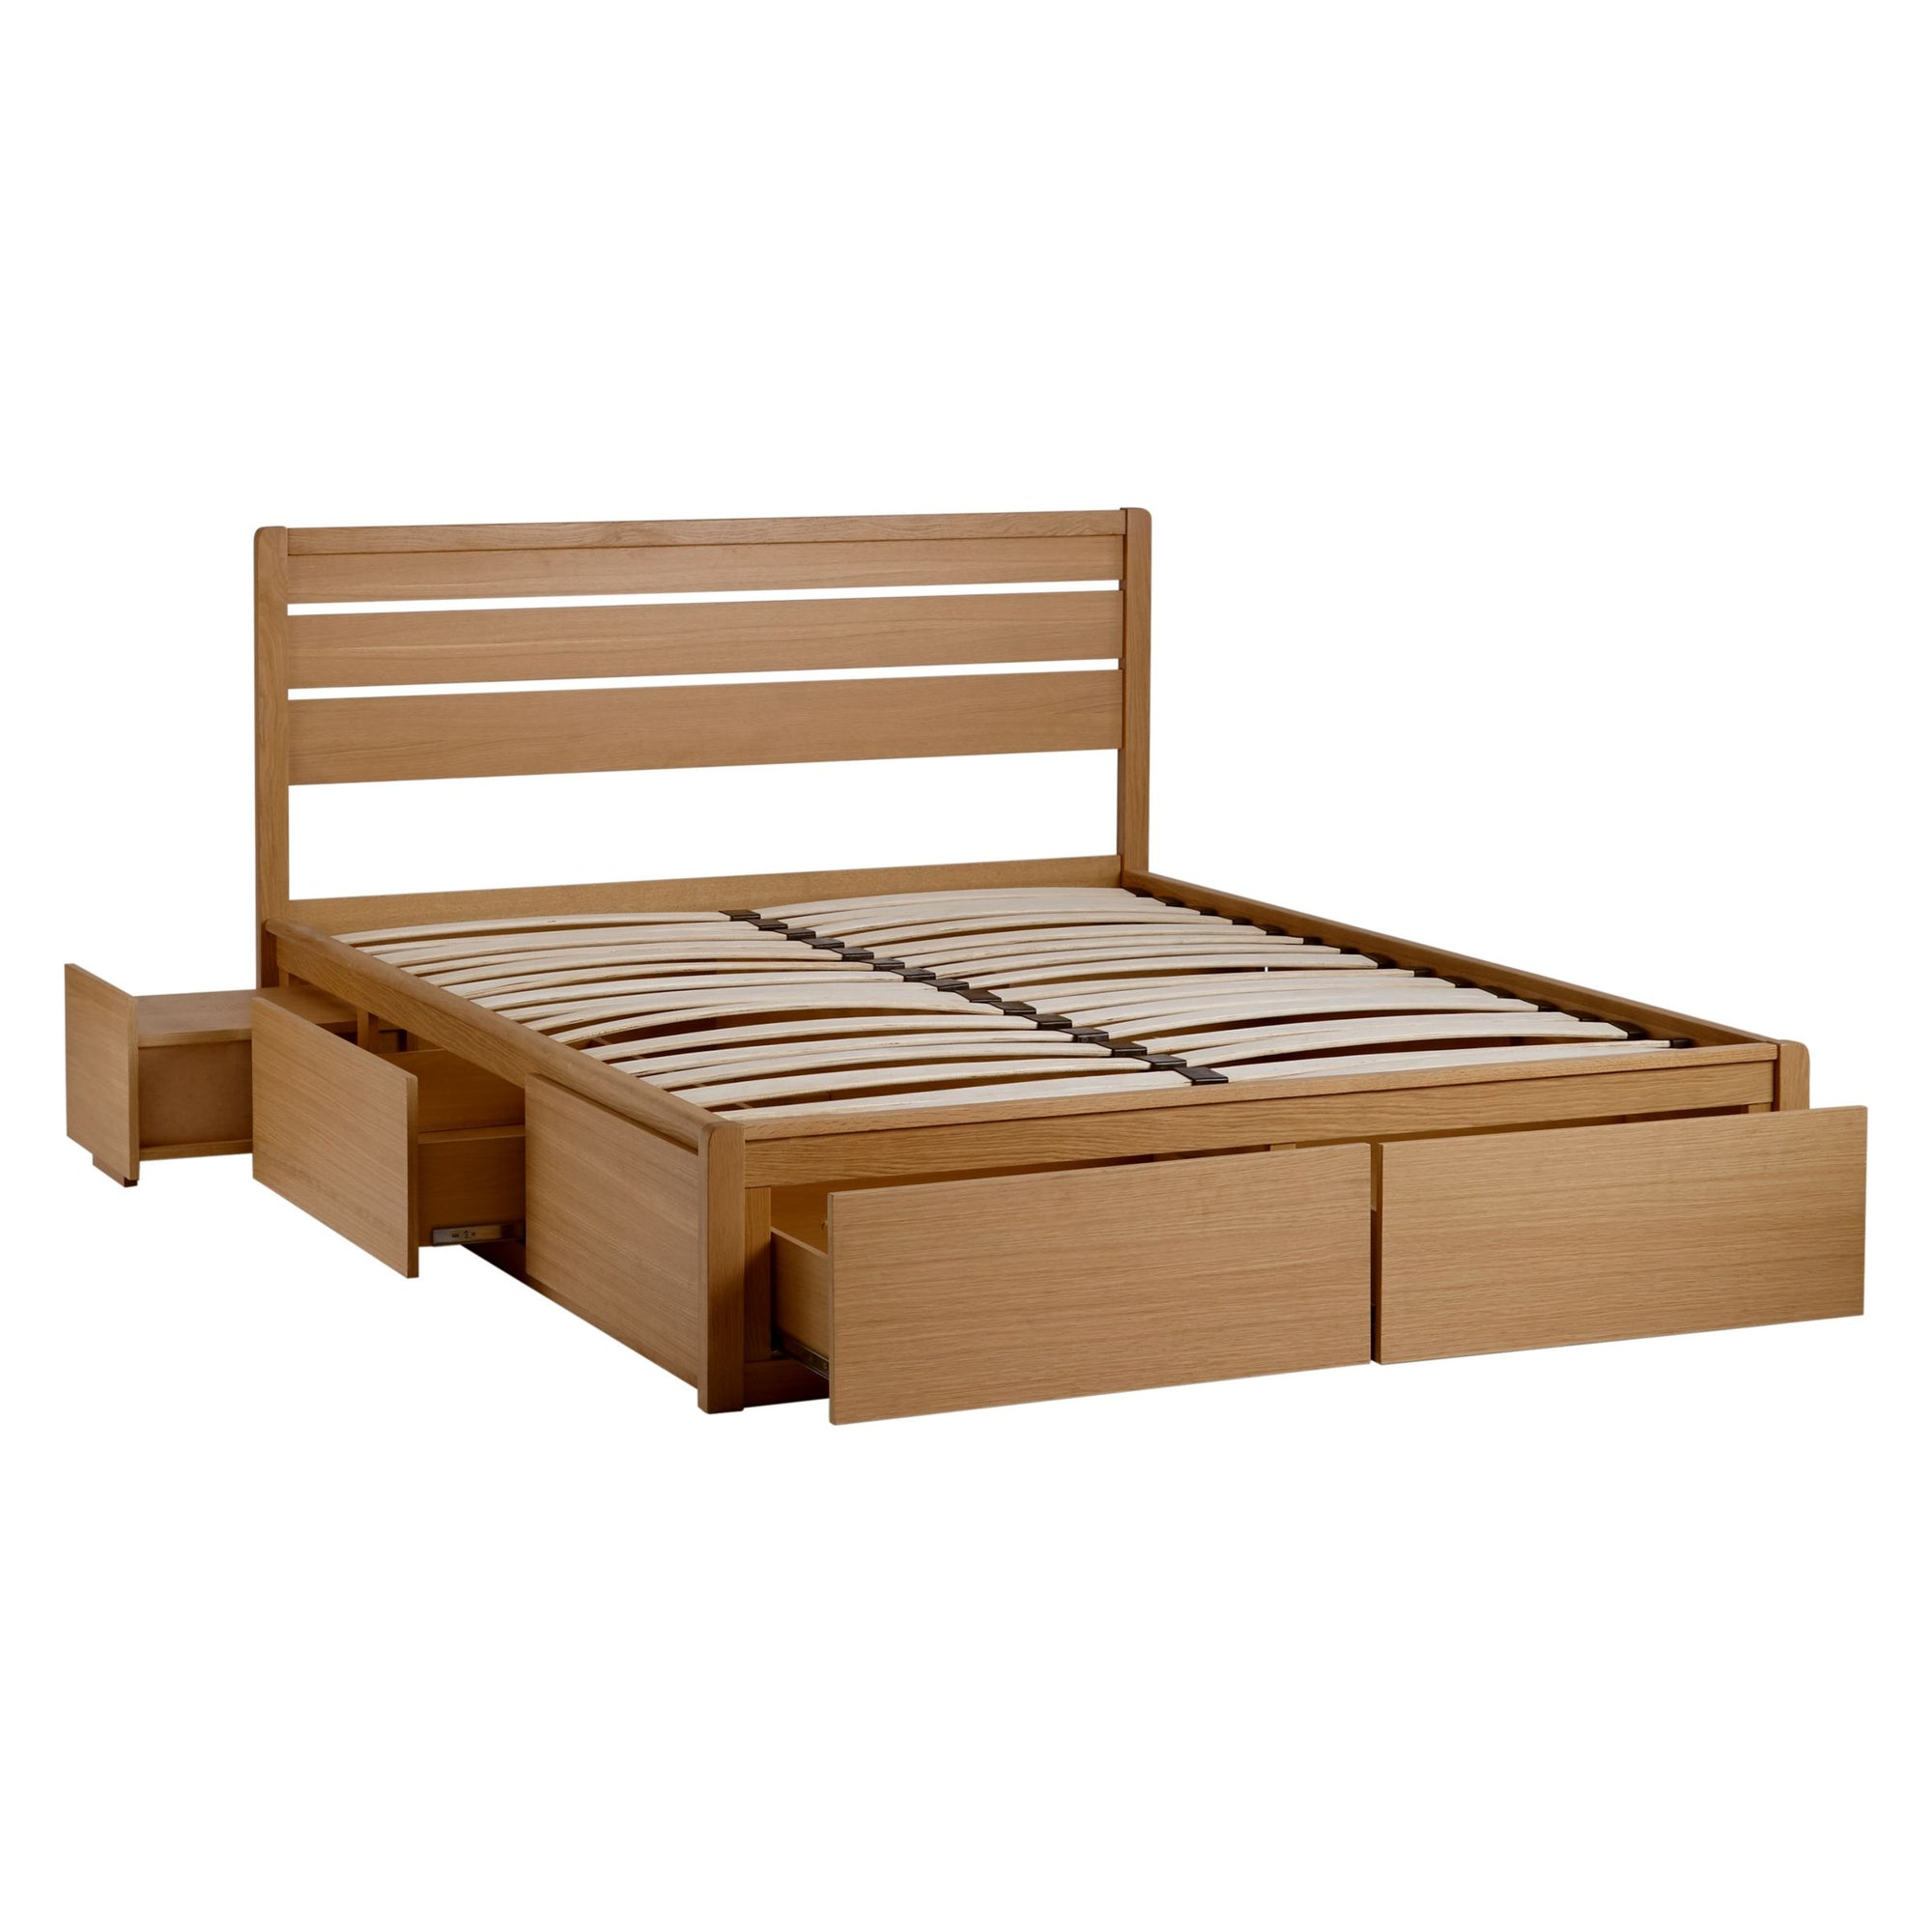 John Lewis & Partners Montreal Storage Bed, King Size, Oak